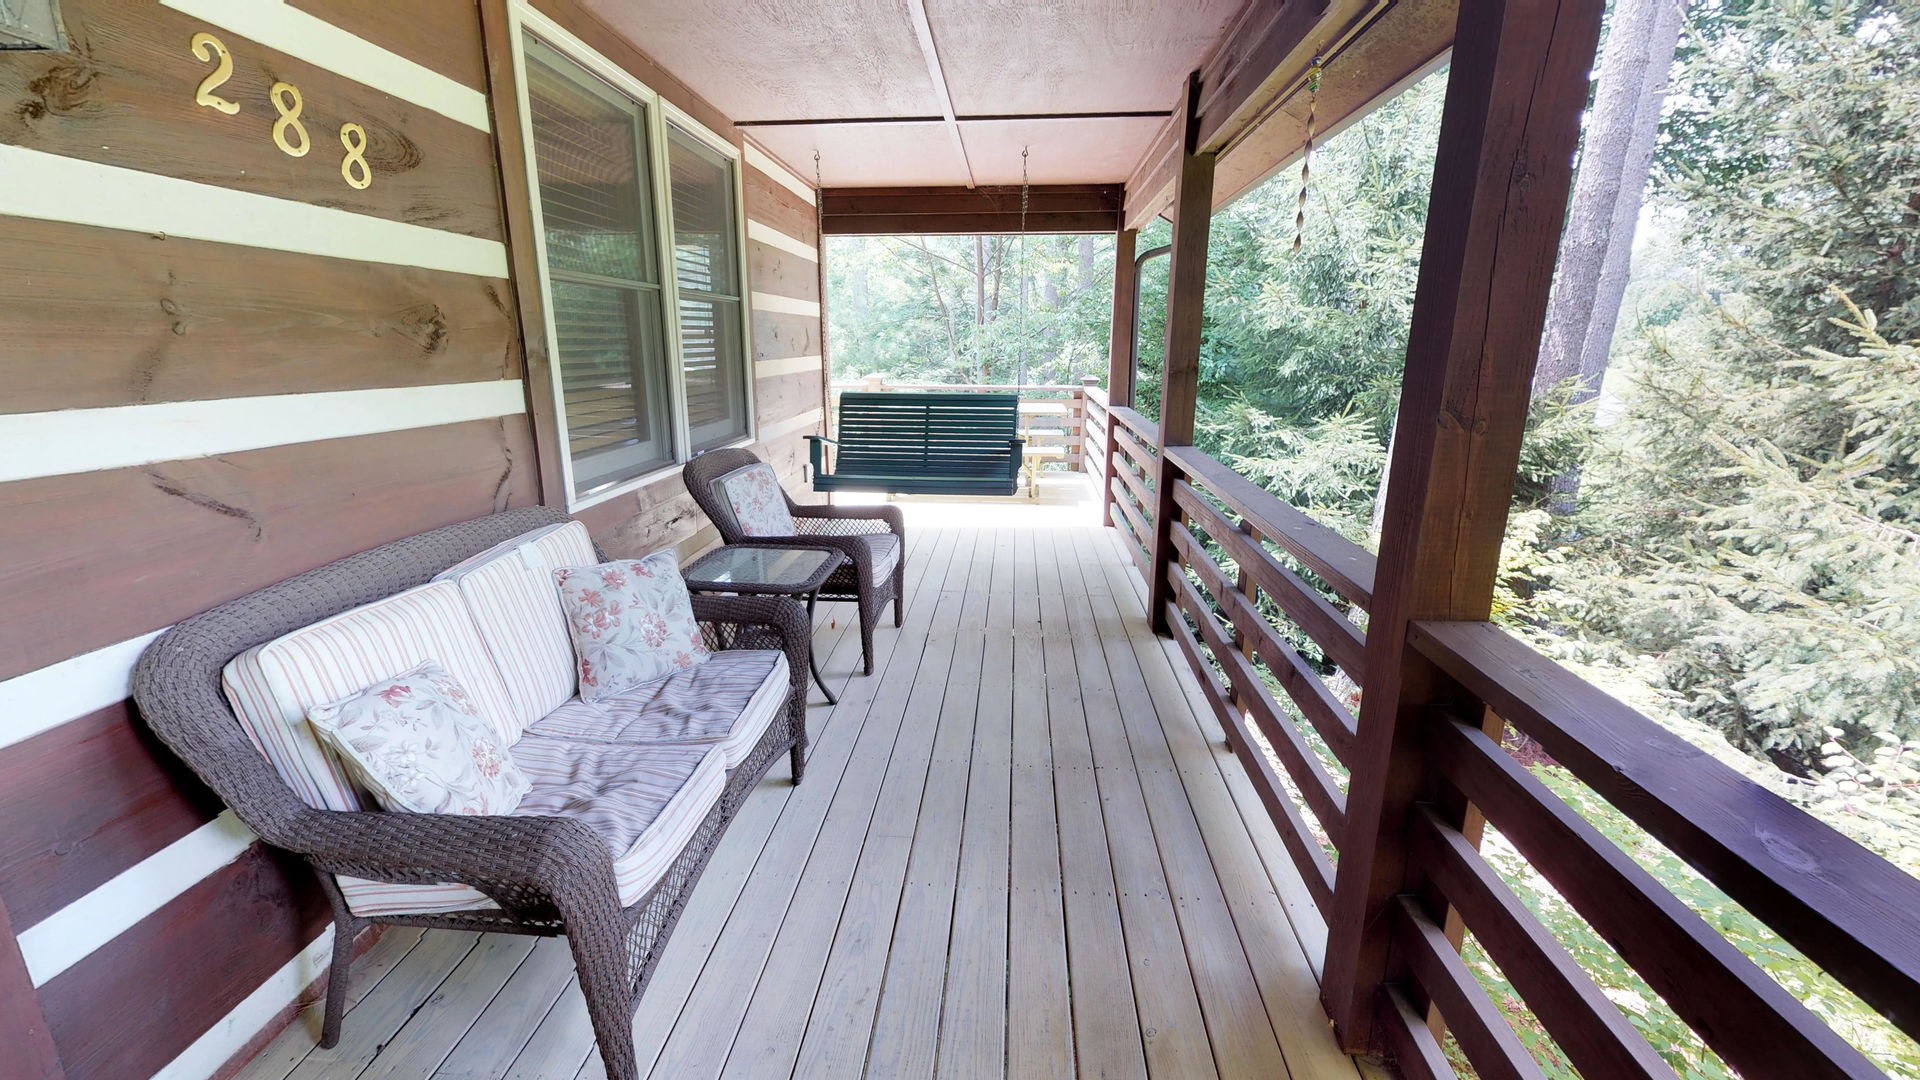 Porch with outdoor seating